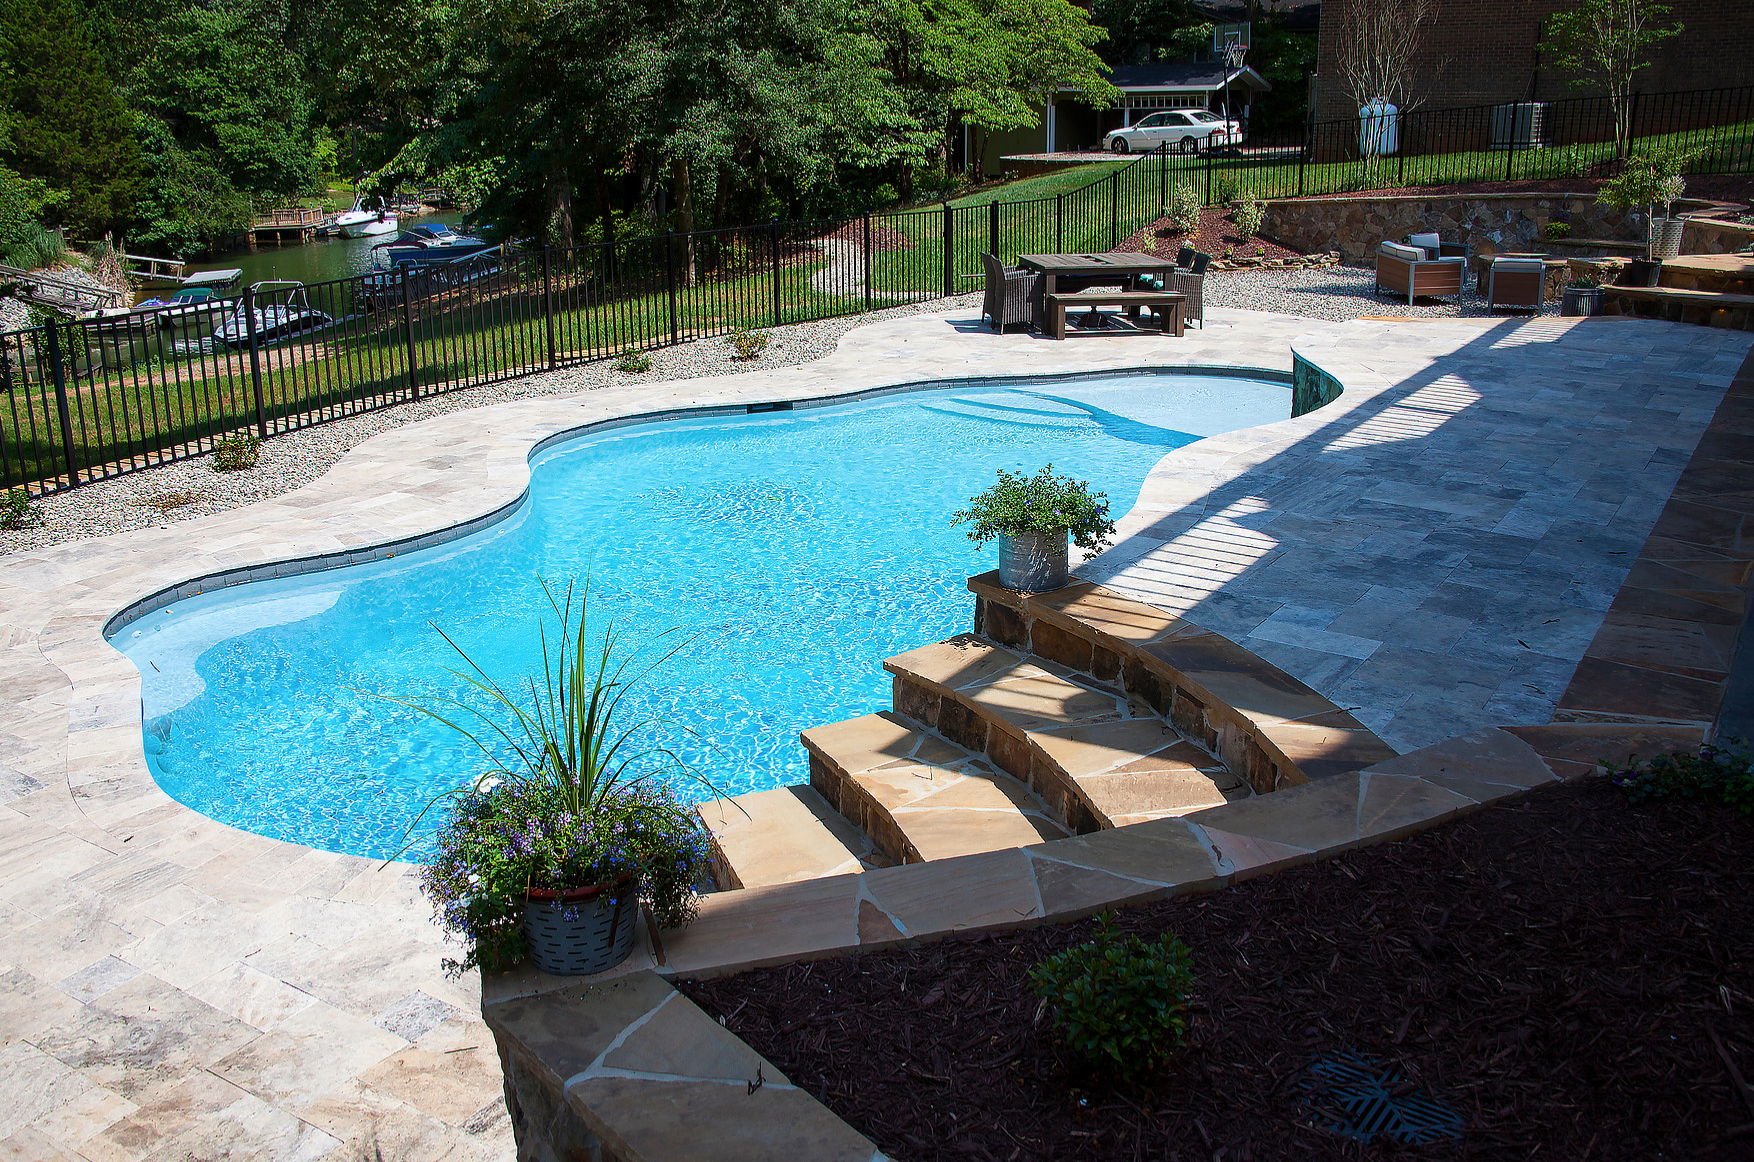 Custom Inground Concrete Pool Installation Services from CPC Pools in Denver NC 7047995236